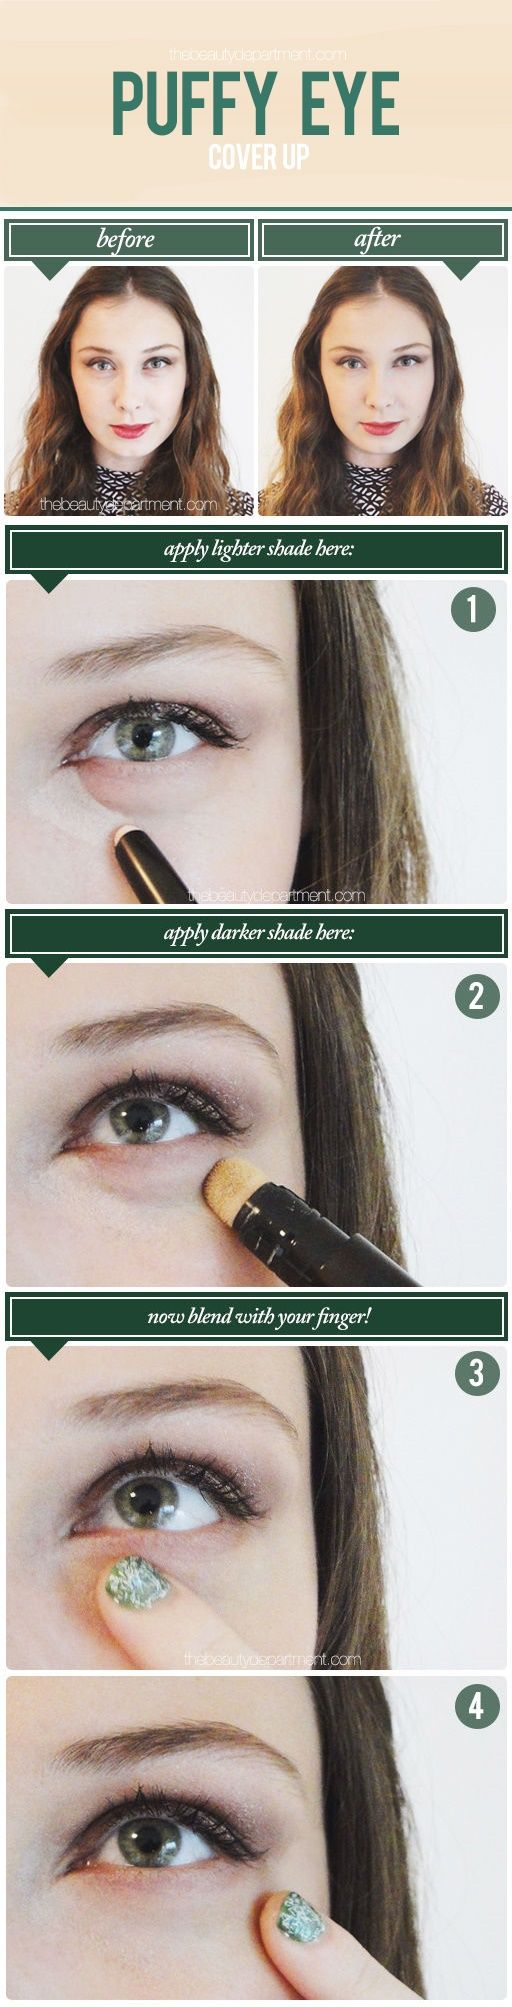 Puffy Eyes Cover-up | Step-by-Step Tutorial | Got them under eye puffs in the morning? Follow this step by step tutorial to learn how to conceal your puffy eyes!